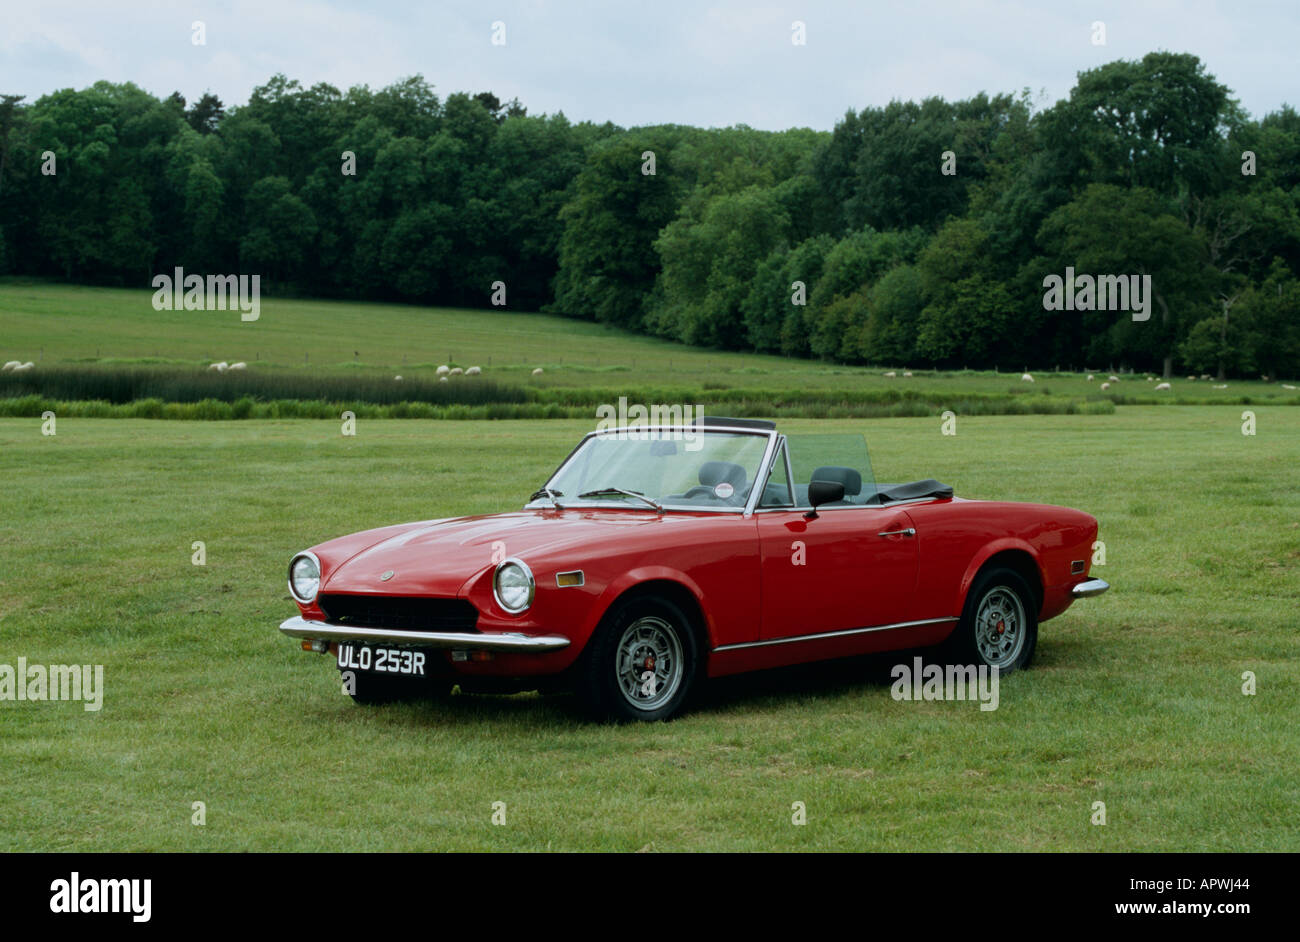 Fiat 124 Spider Stock Photos Images Alamy 1970 Convertible Built 1966 To 1982 Image